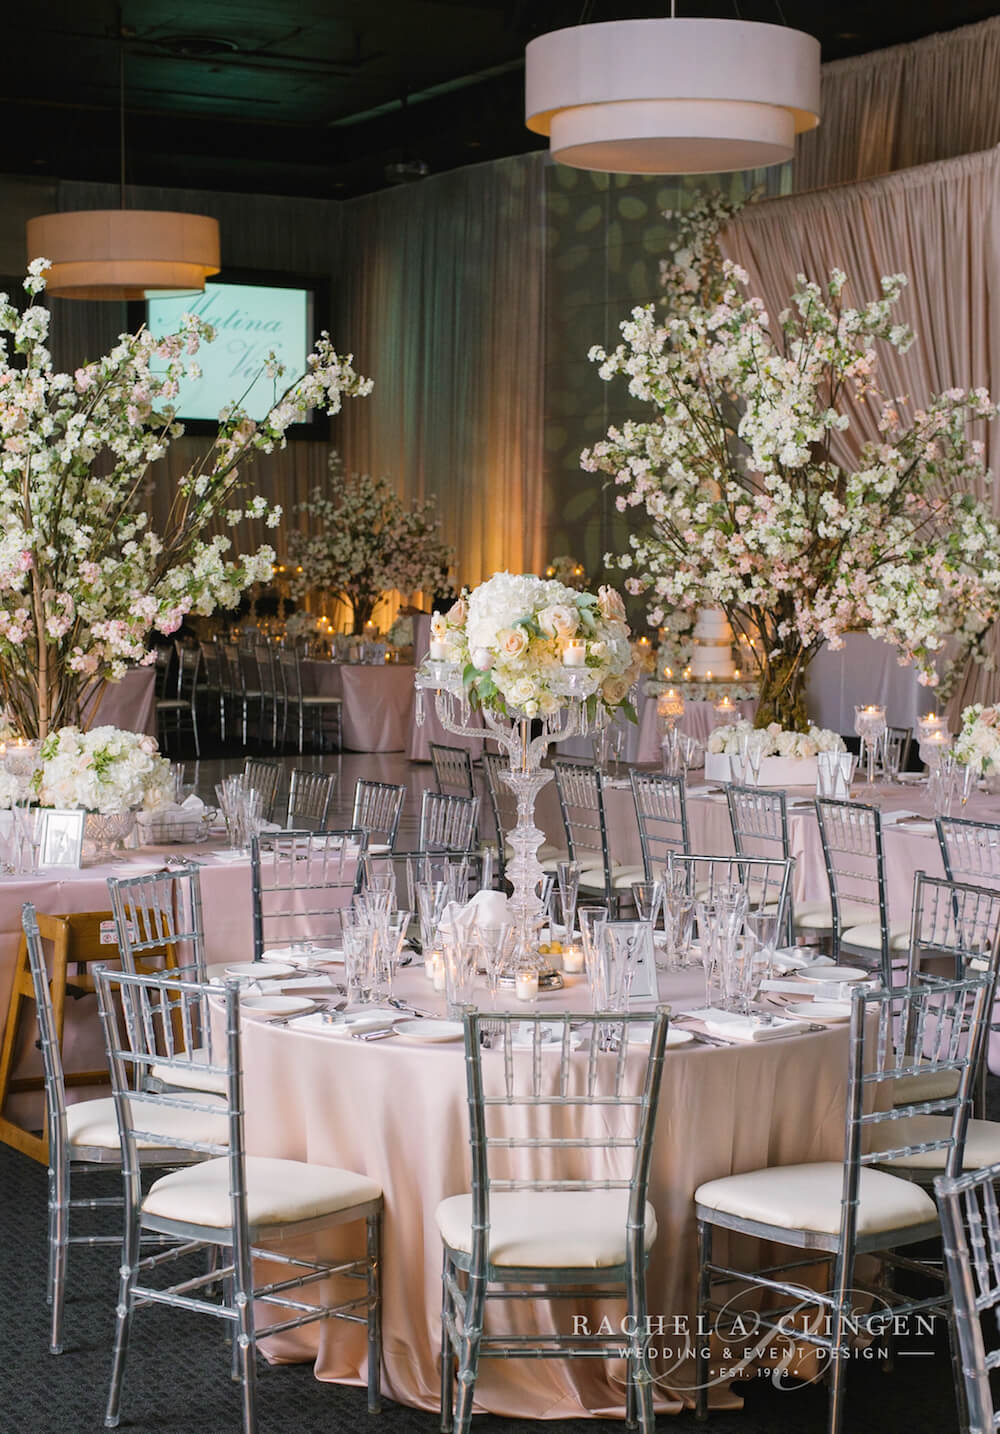 grand-luxe-weddings-rachel-clingen